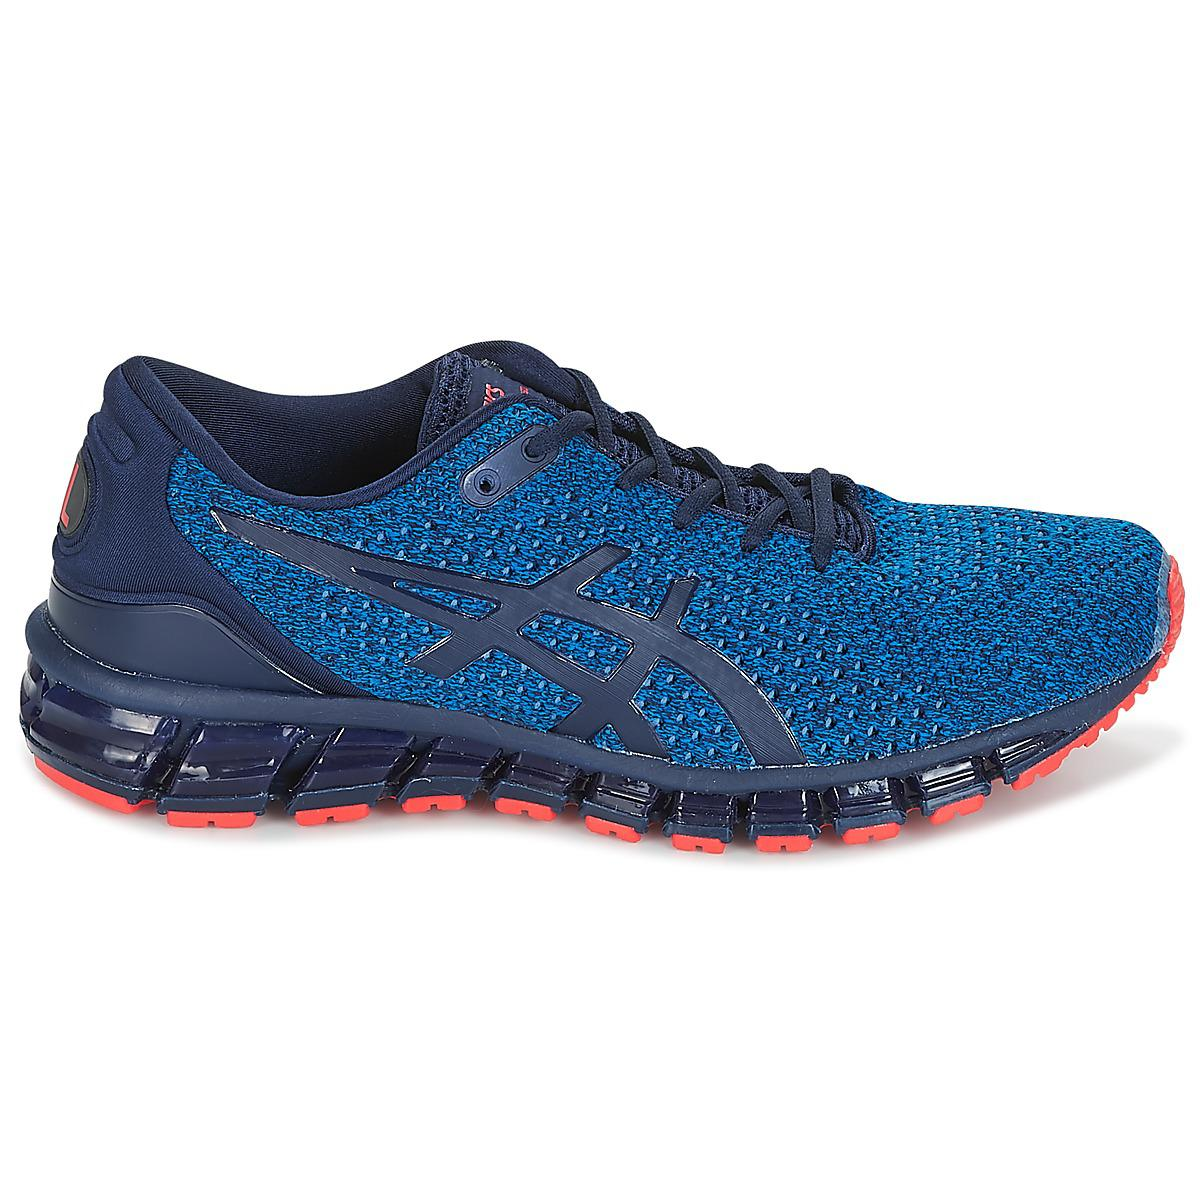 e82964e95af71 Asics - Gel-quantum 360 Knit 2 Men s Running Trainers In Blue for Men -.  View fullscreen